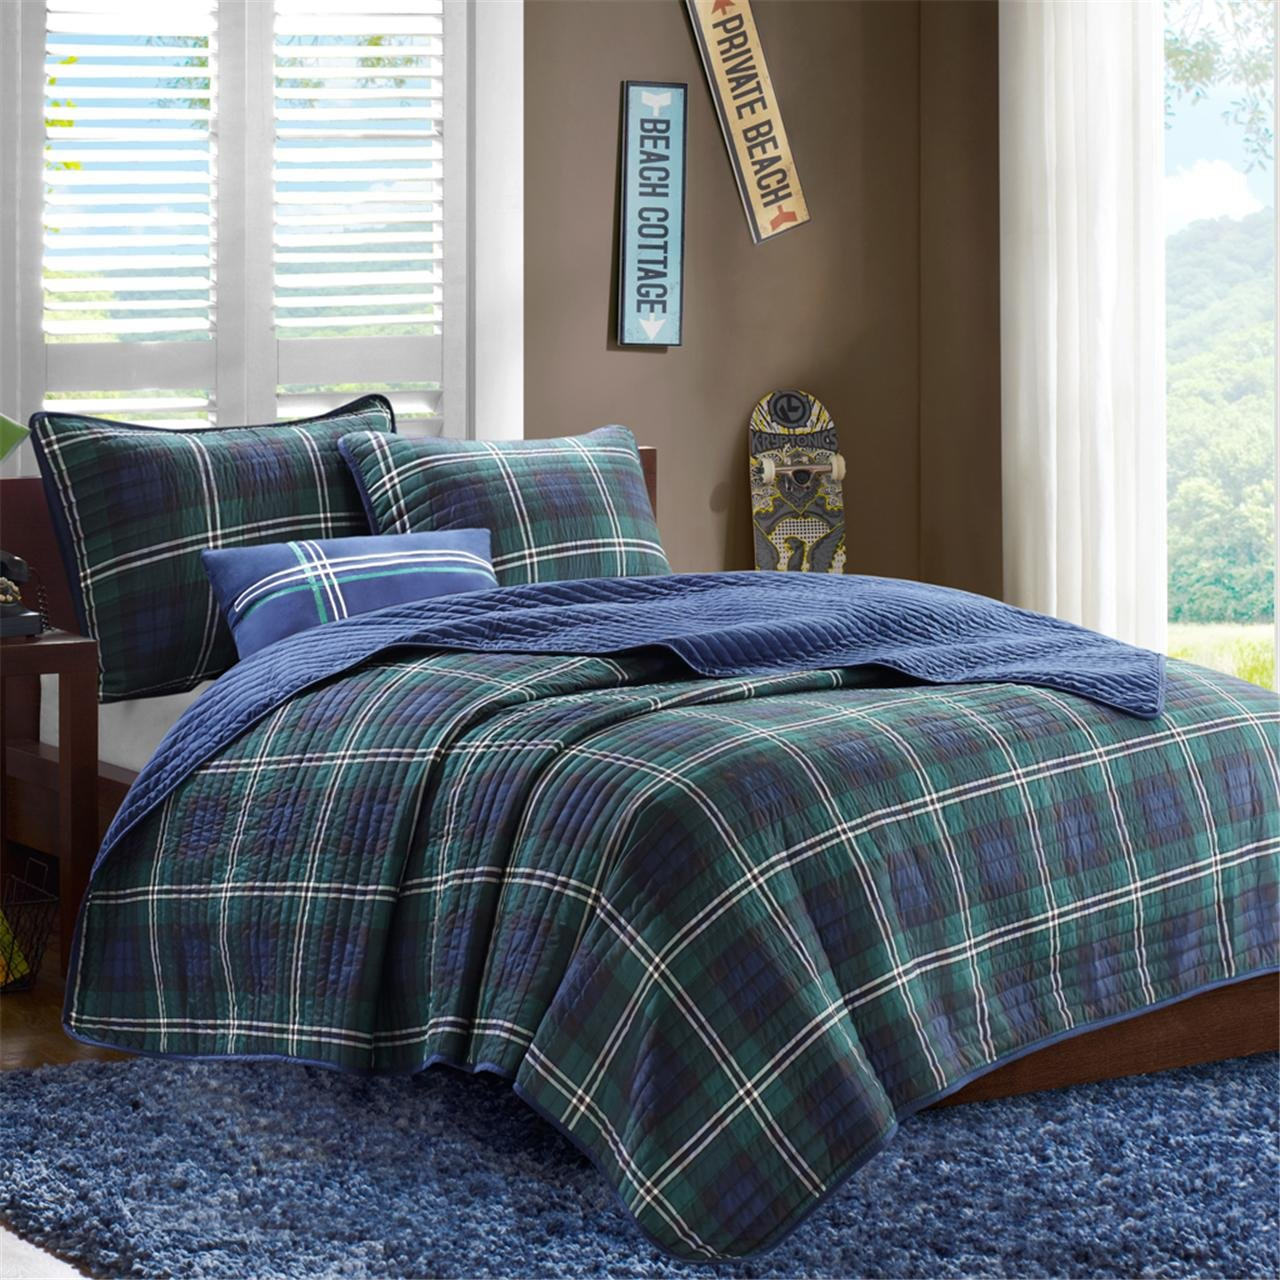 Mi-Zone Brody Full/Queen Size Teen Boys Quilt Bedding Set - Blue, Green, Plaid - 4 Piece Boys Bedding Quilt Coverlets - Peach Skin Fabric Bed Quilts Quilted Coverlet by Mi-Zone